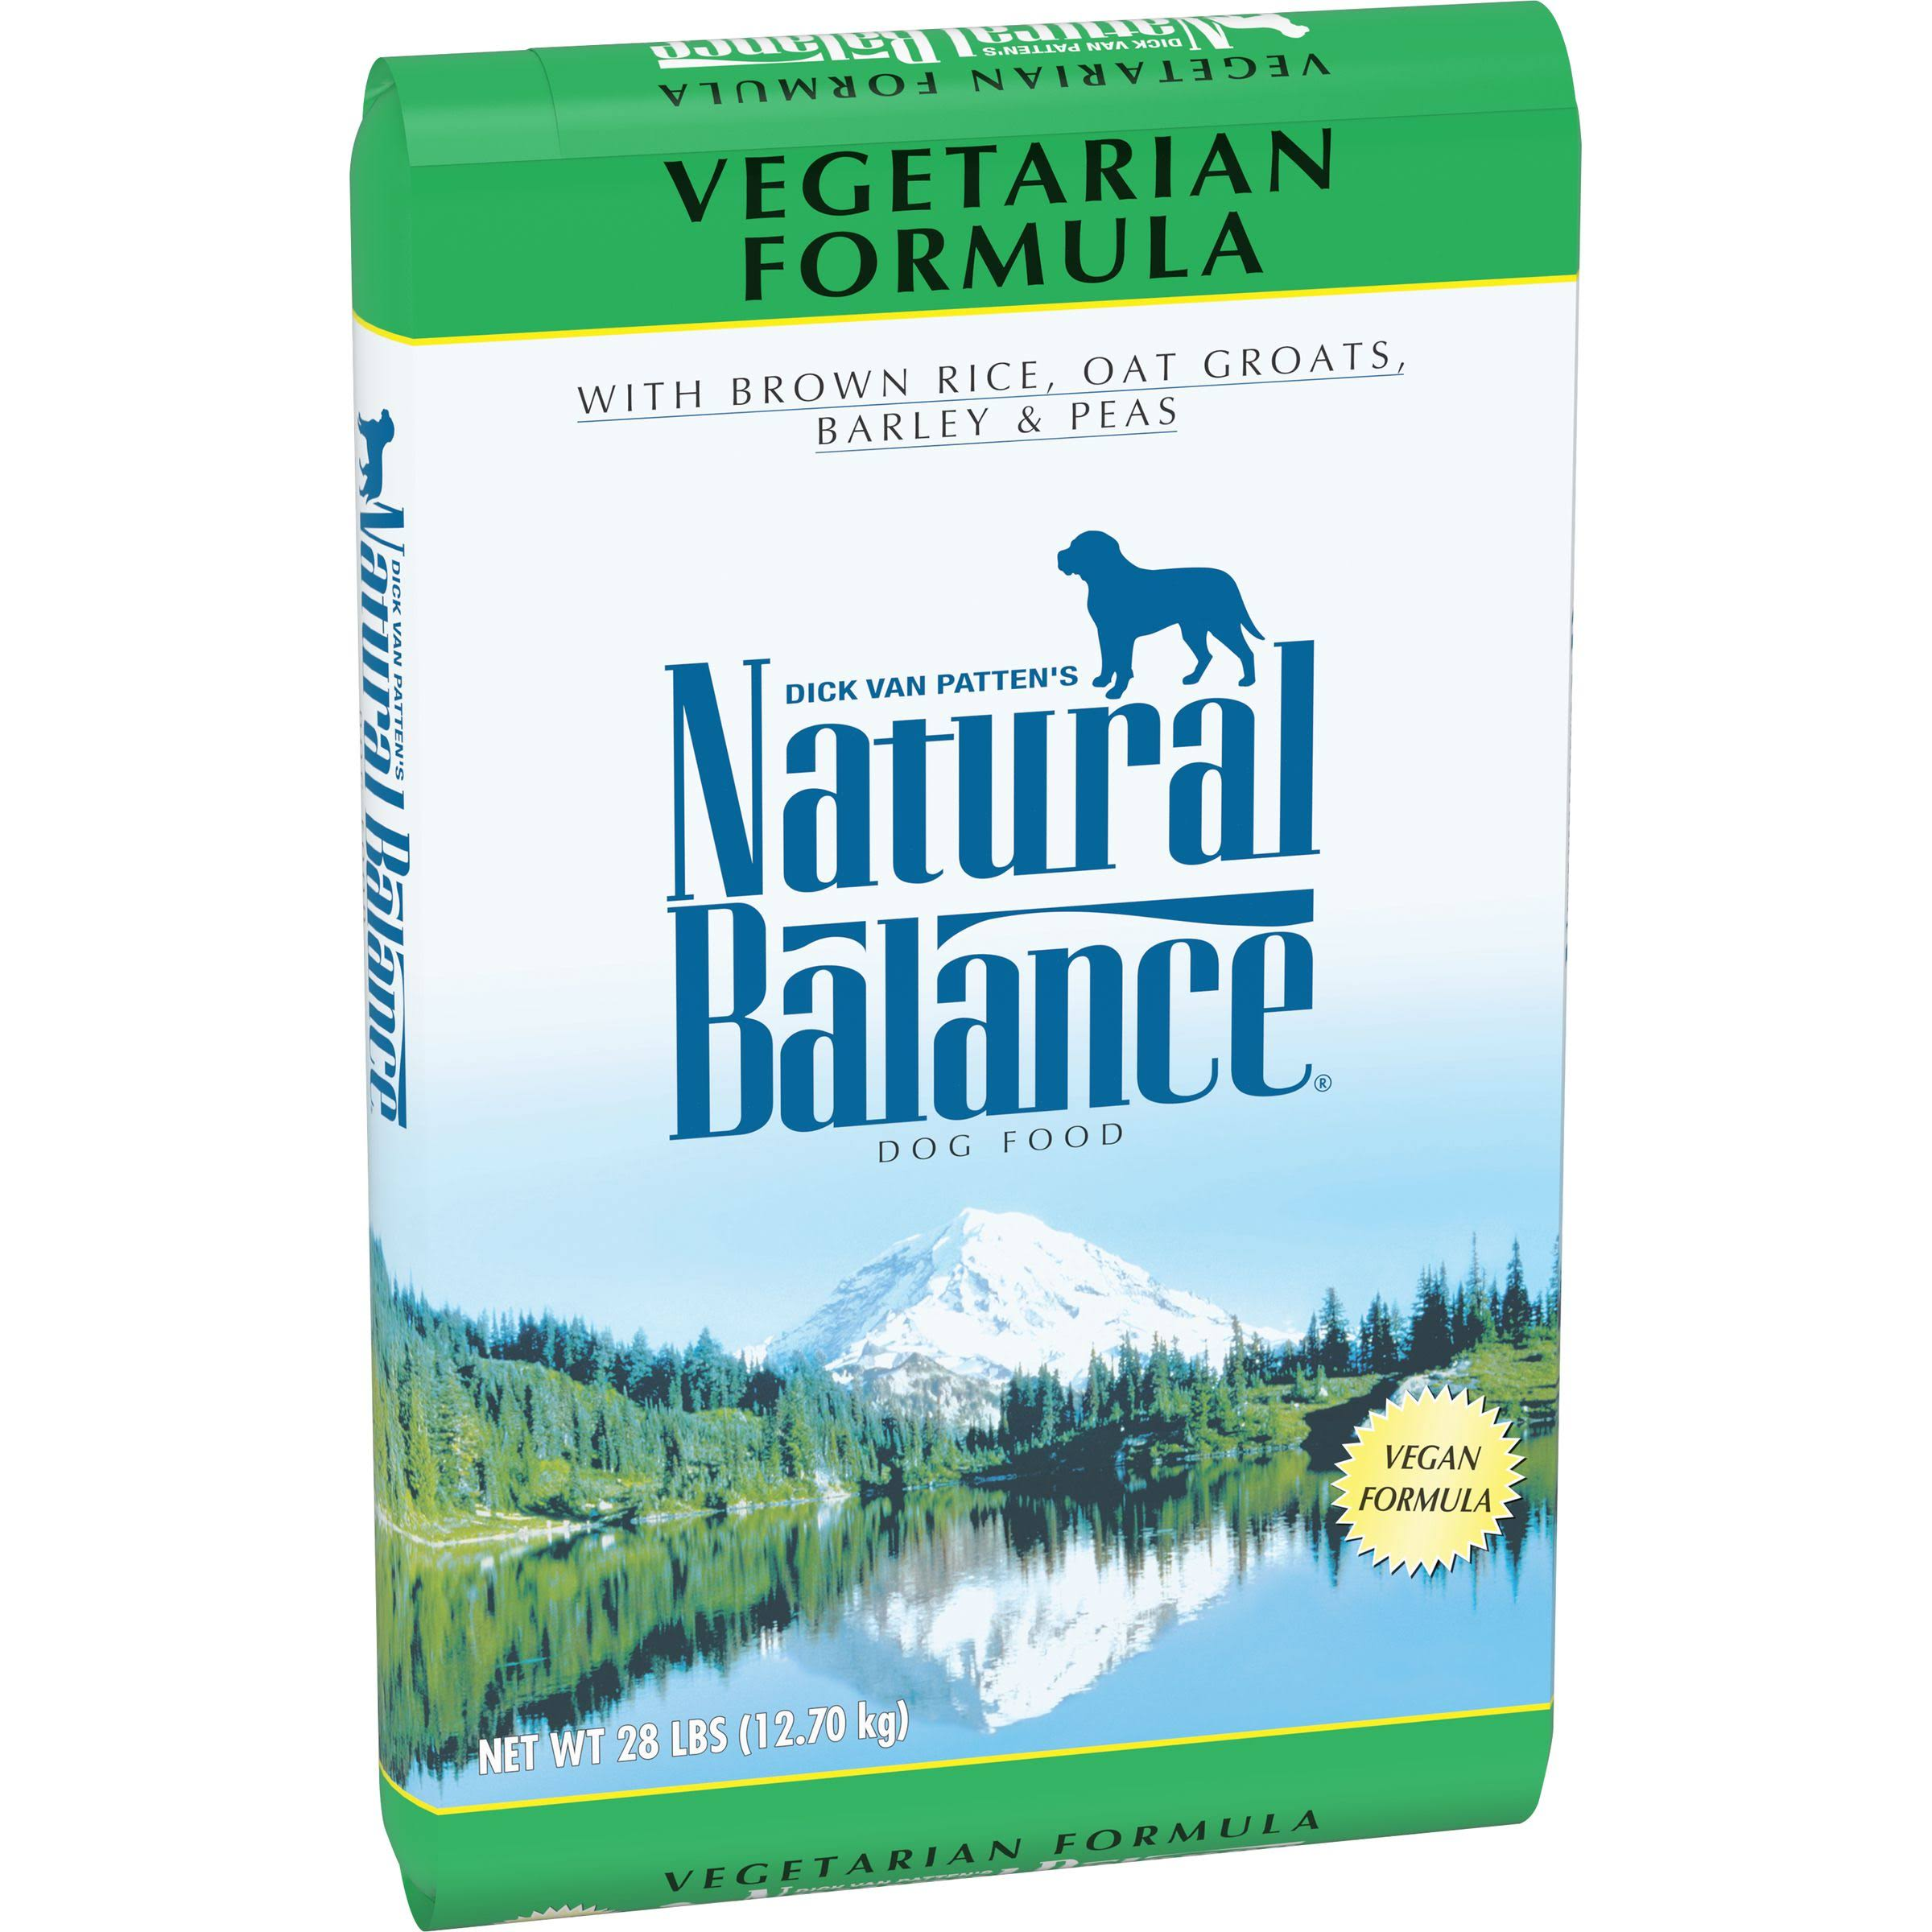 Natural Balance Adult Dog Dry Food - Vegetarian, 28lb